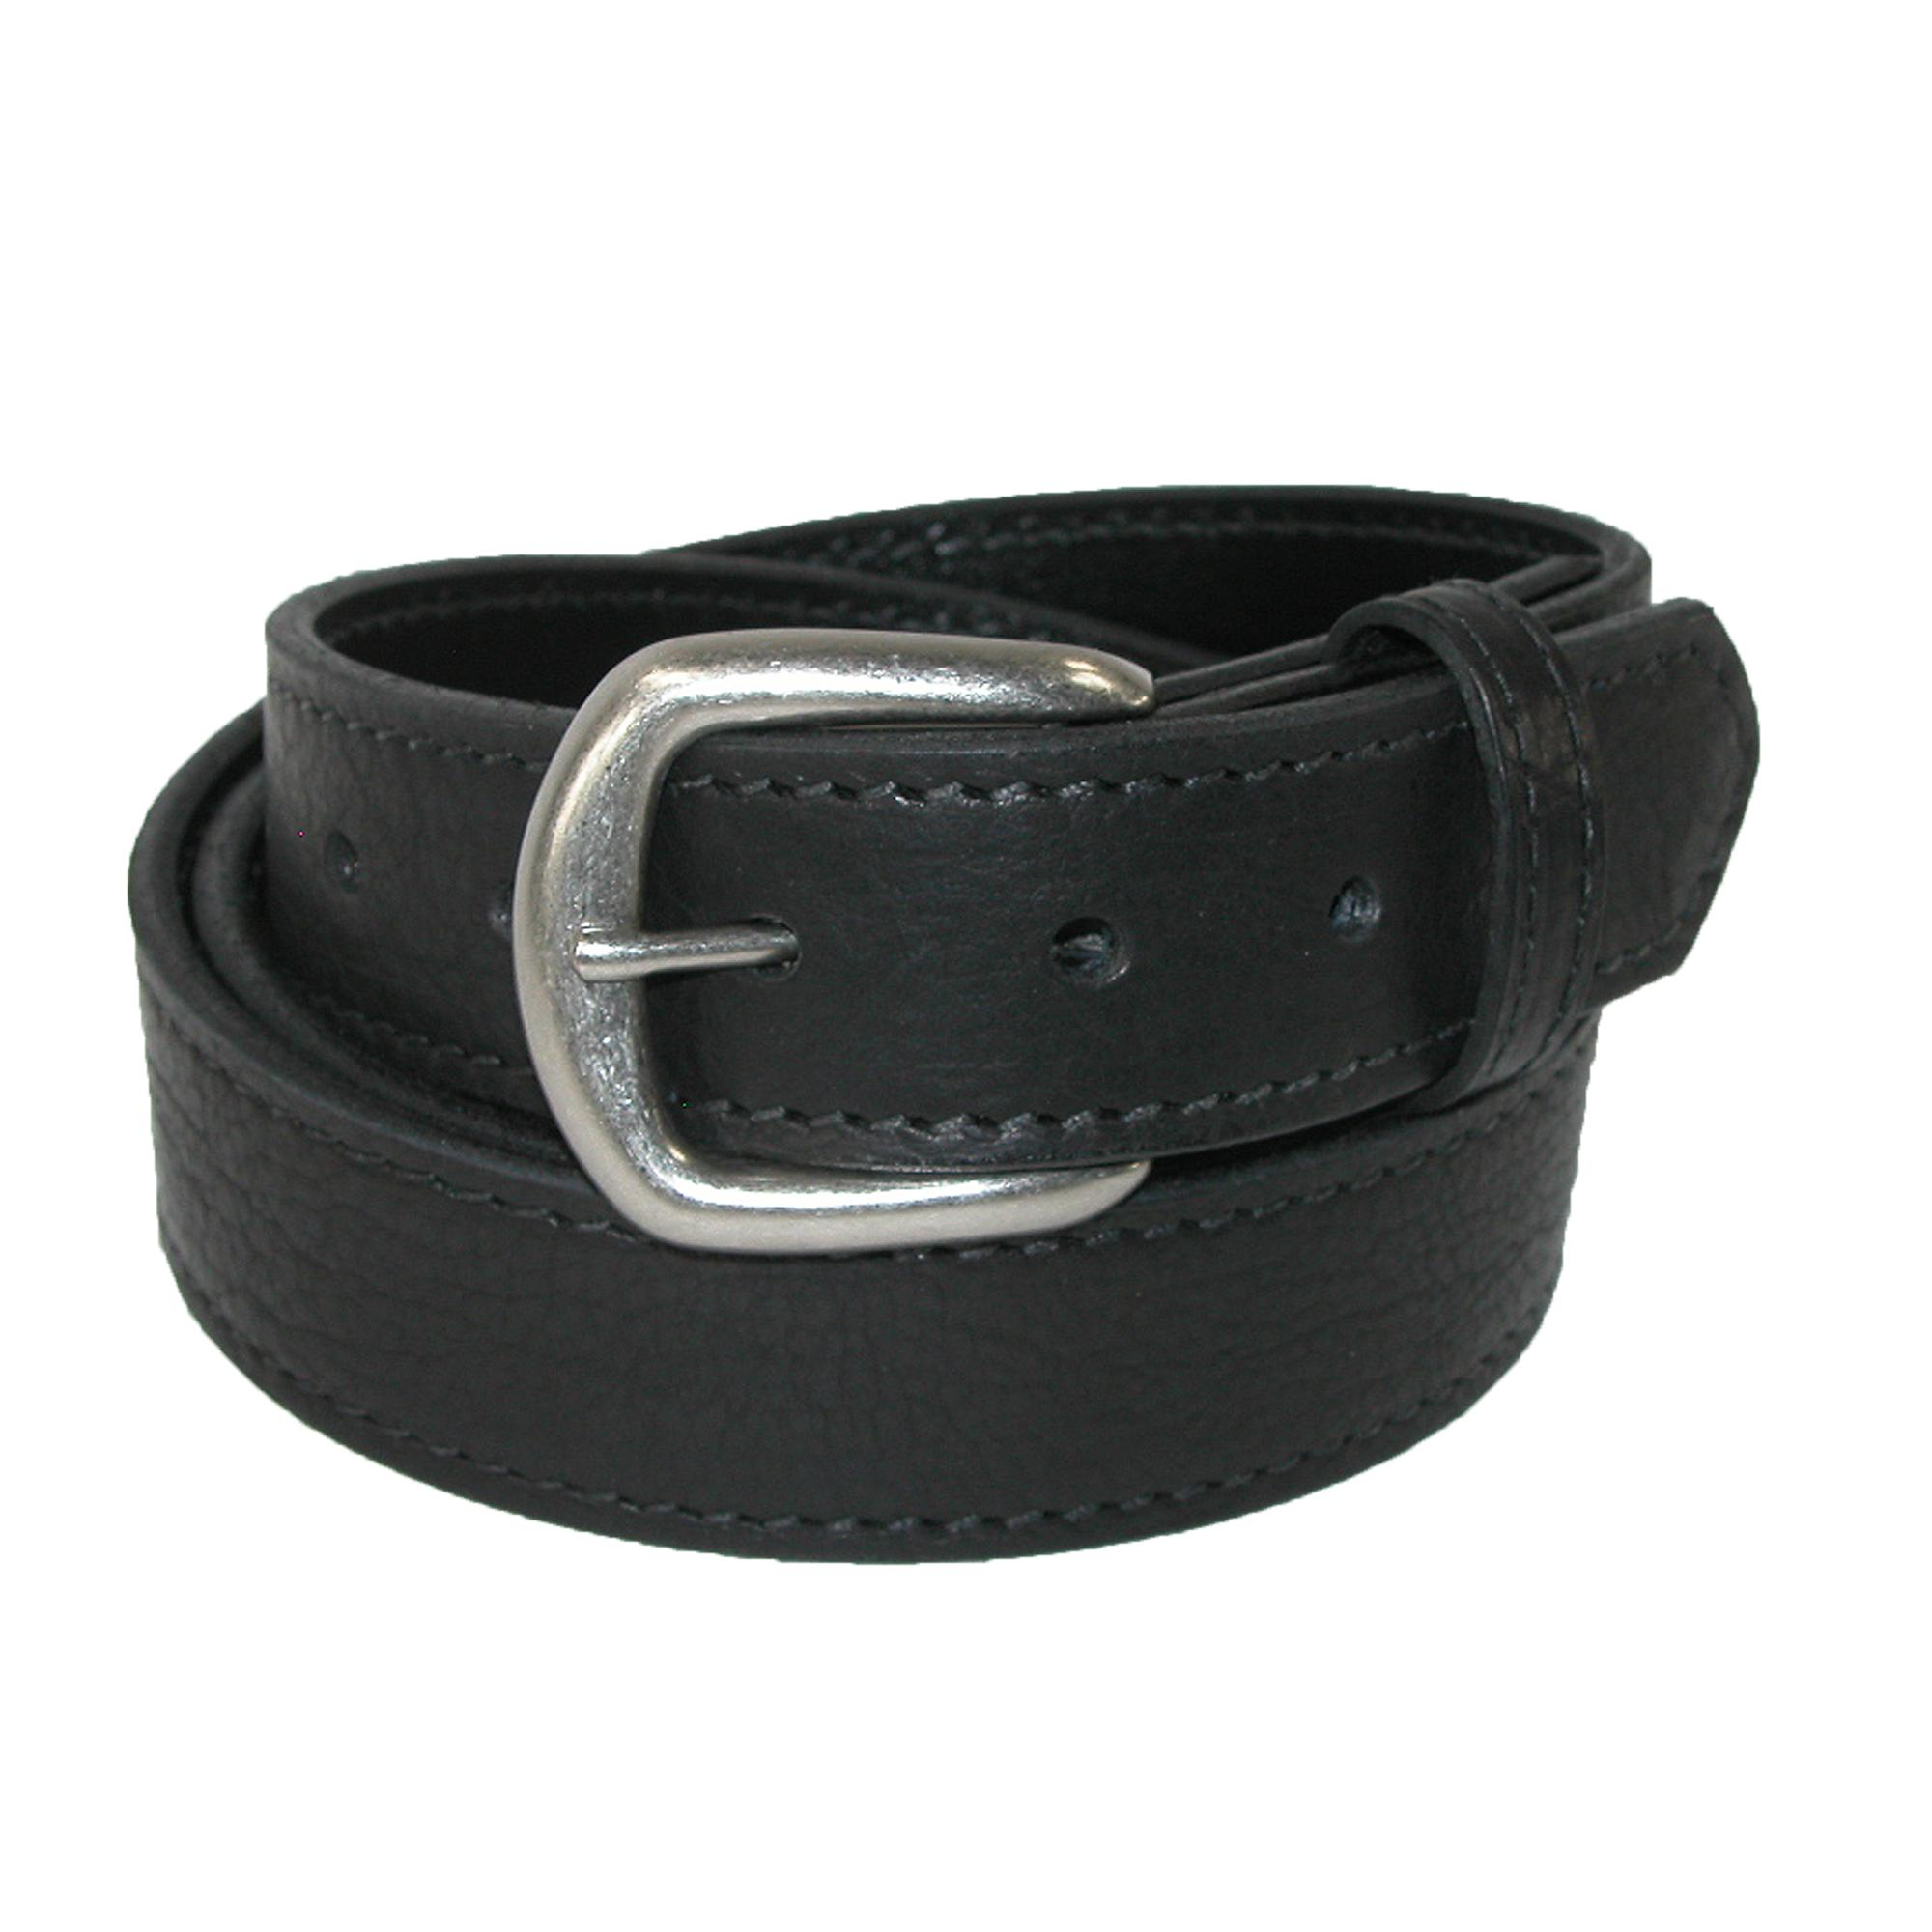 Boston Leather Men's Big & Tall Bison Leather Belt With Removable Buckle